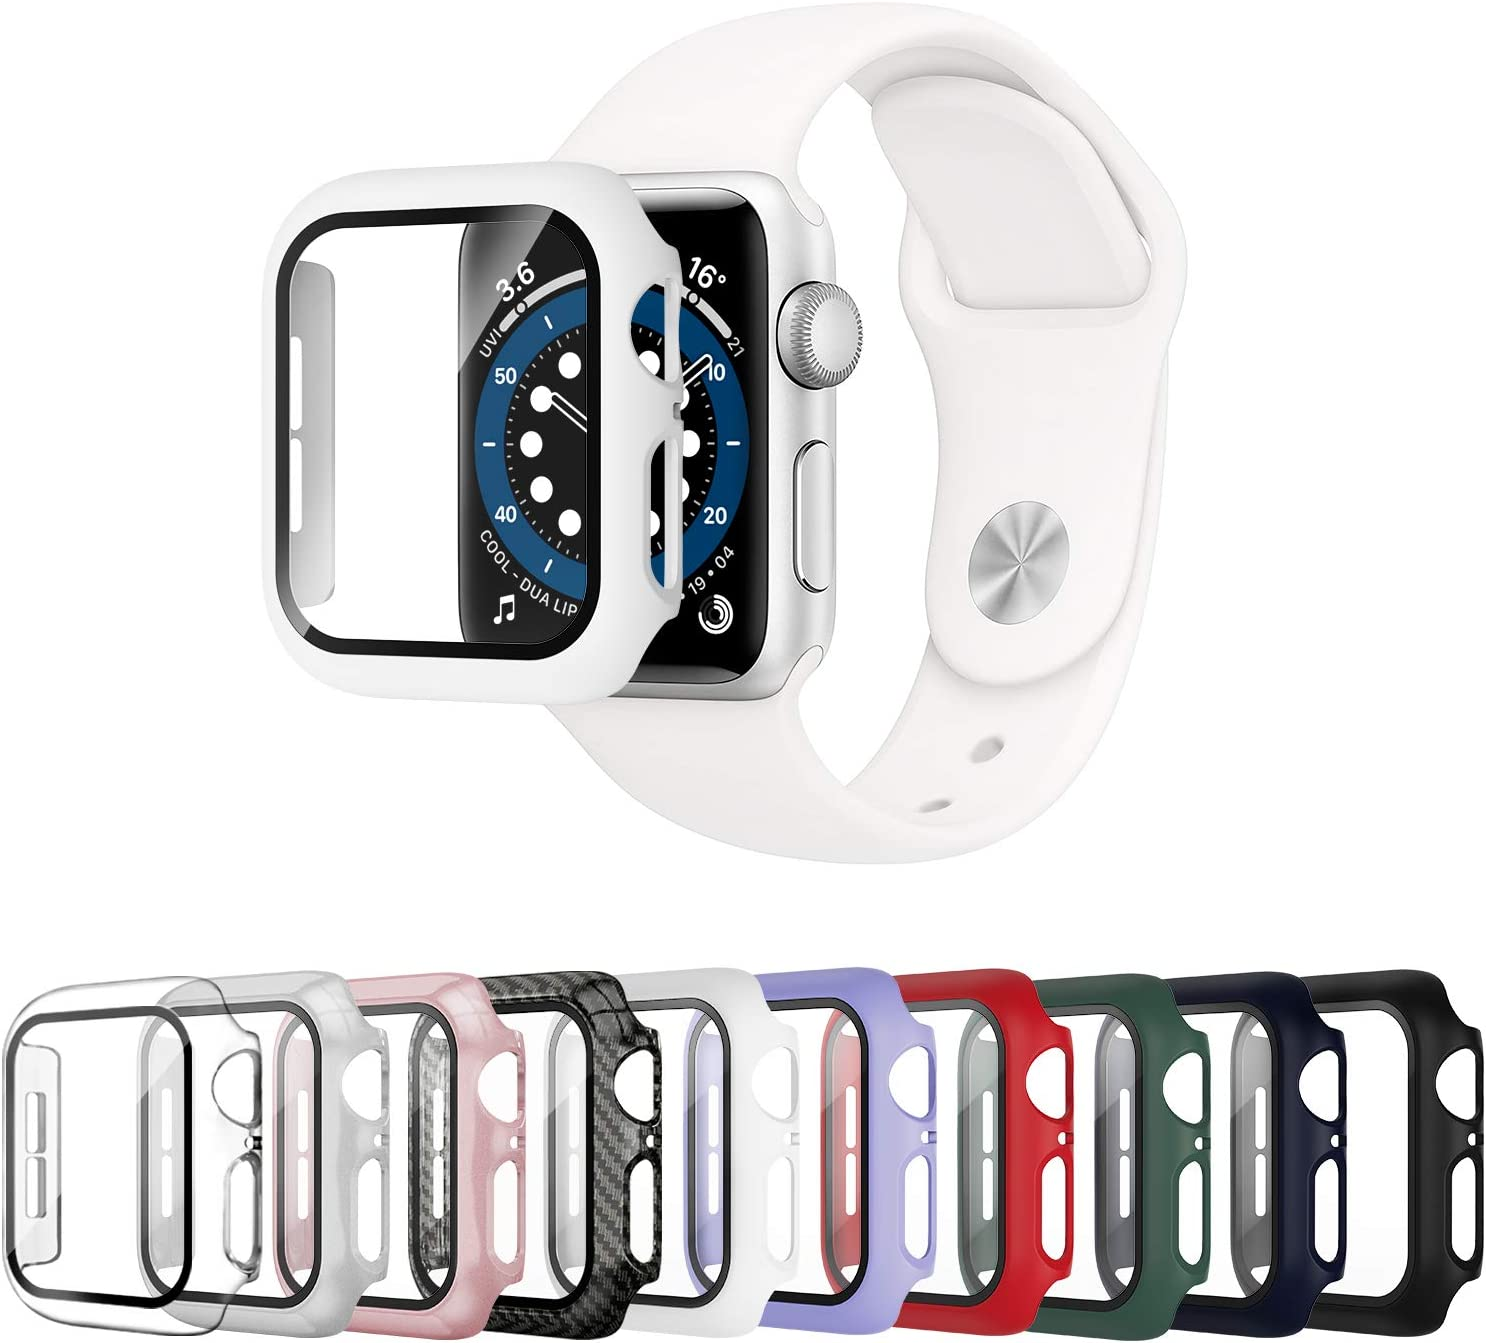 Mocodi 10 Pack Apple Watch Case 44mm Series 6/5/4/SE with Tempered Glass Screen Protector,Ultra-Thin Hard PC Shockproof Bumper Full Scratch-Resistant Protective Cover for Men Women iWatch Accessories